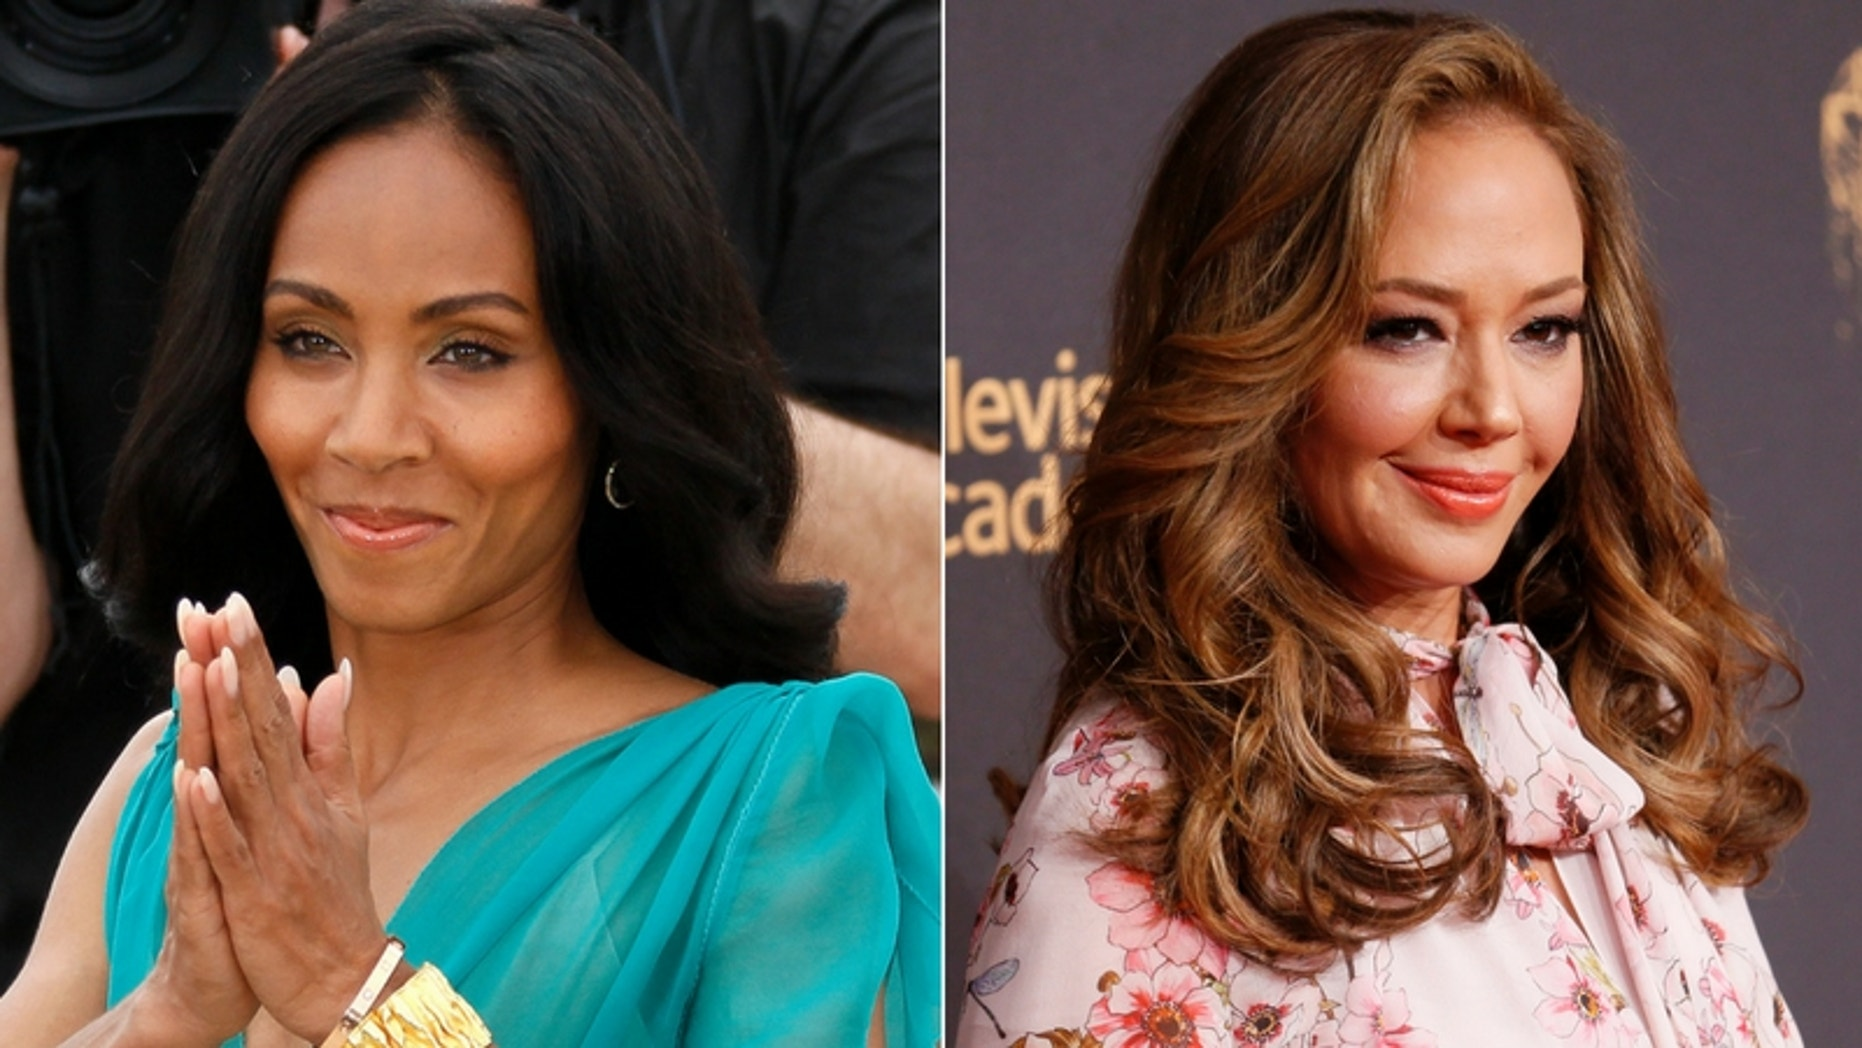 Jada Pinkett Smith denied she was a Scientologist after Leah Remini claimed the actress had been practicing the religion.